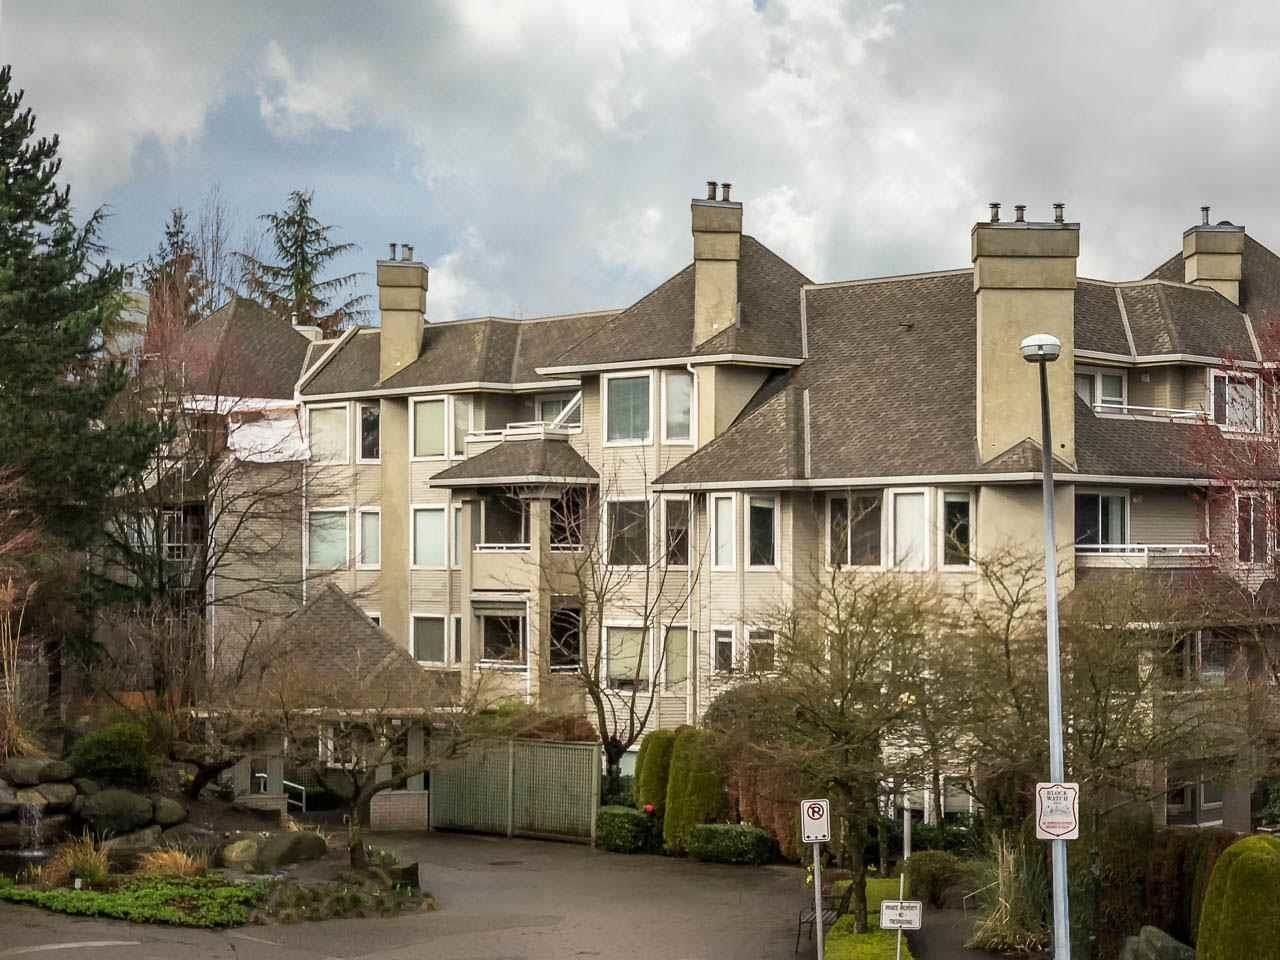 """Main Photo: 408 3733 NORFOLK Street in Burnaby: Central BN Condo for sale in """"THE WINCHELSEA"""" (Burnaby North)  : MLS®# R2614850"""